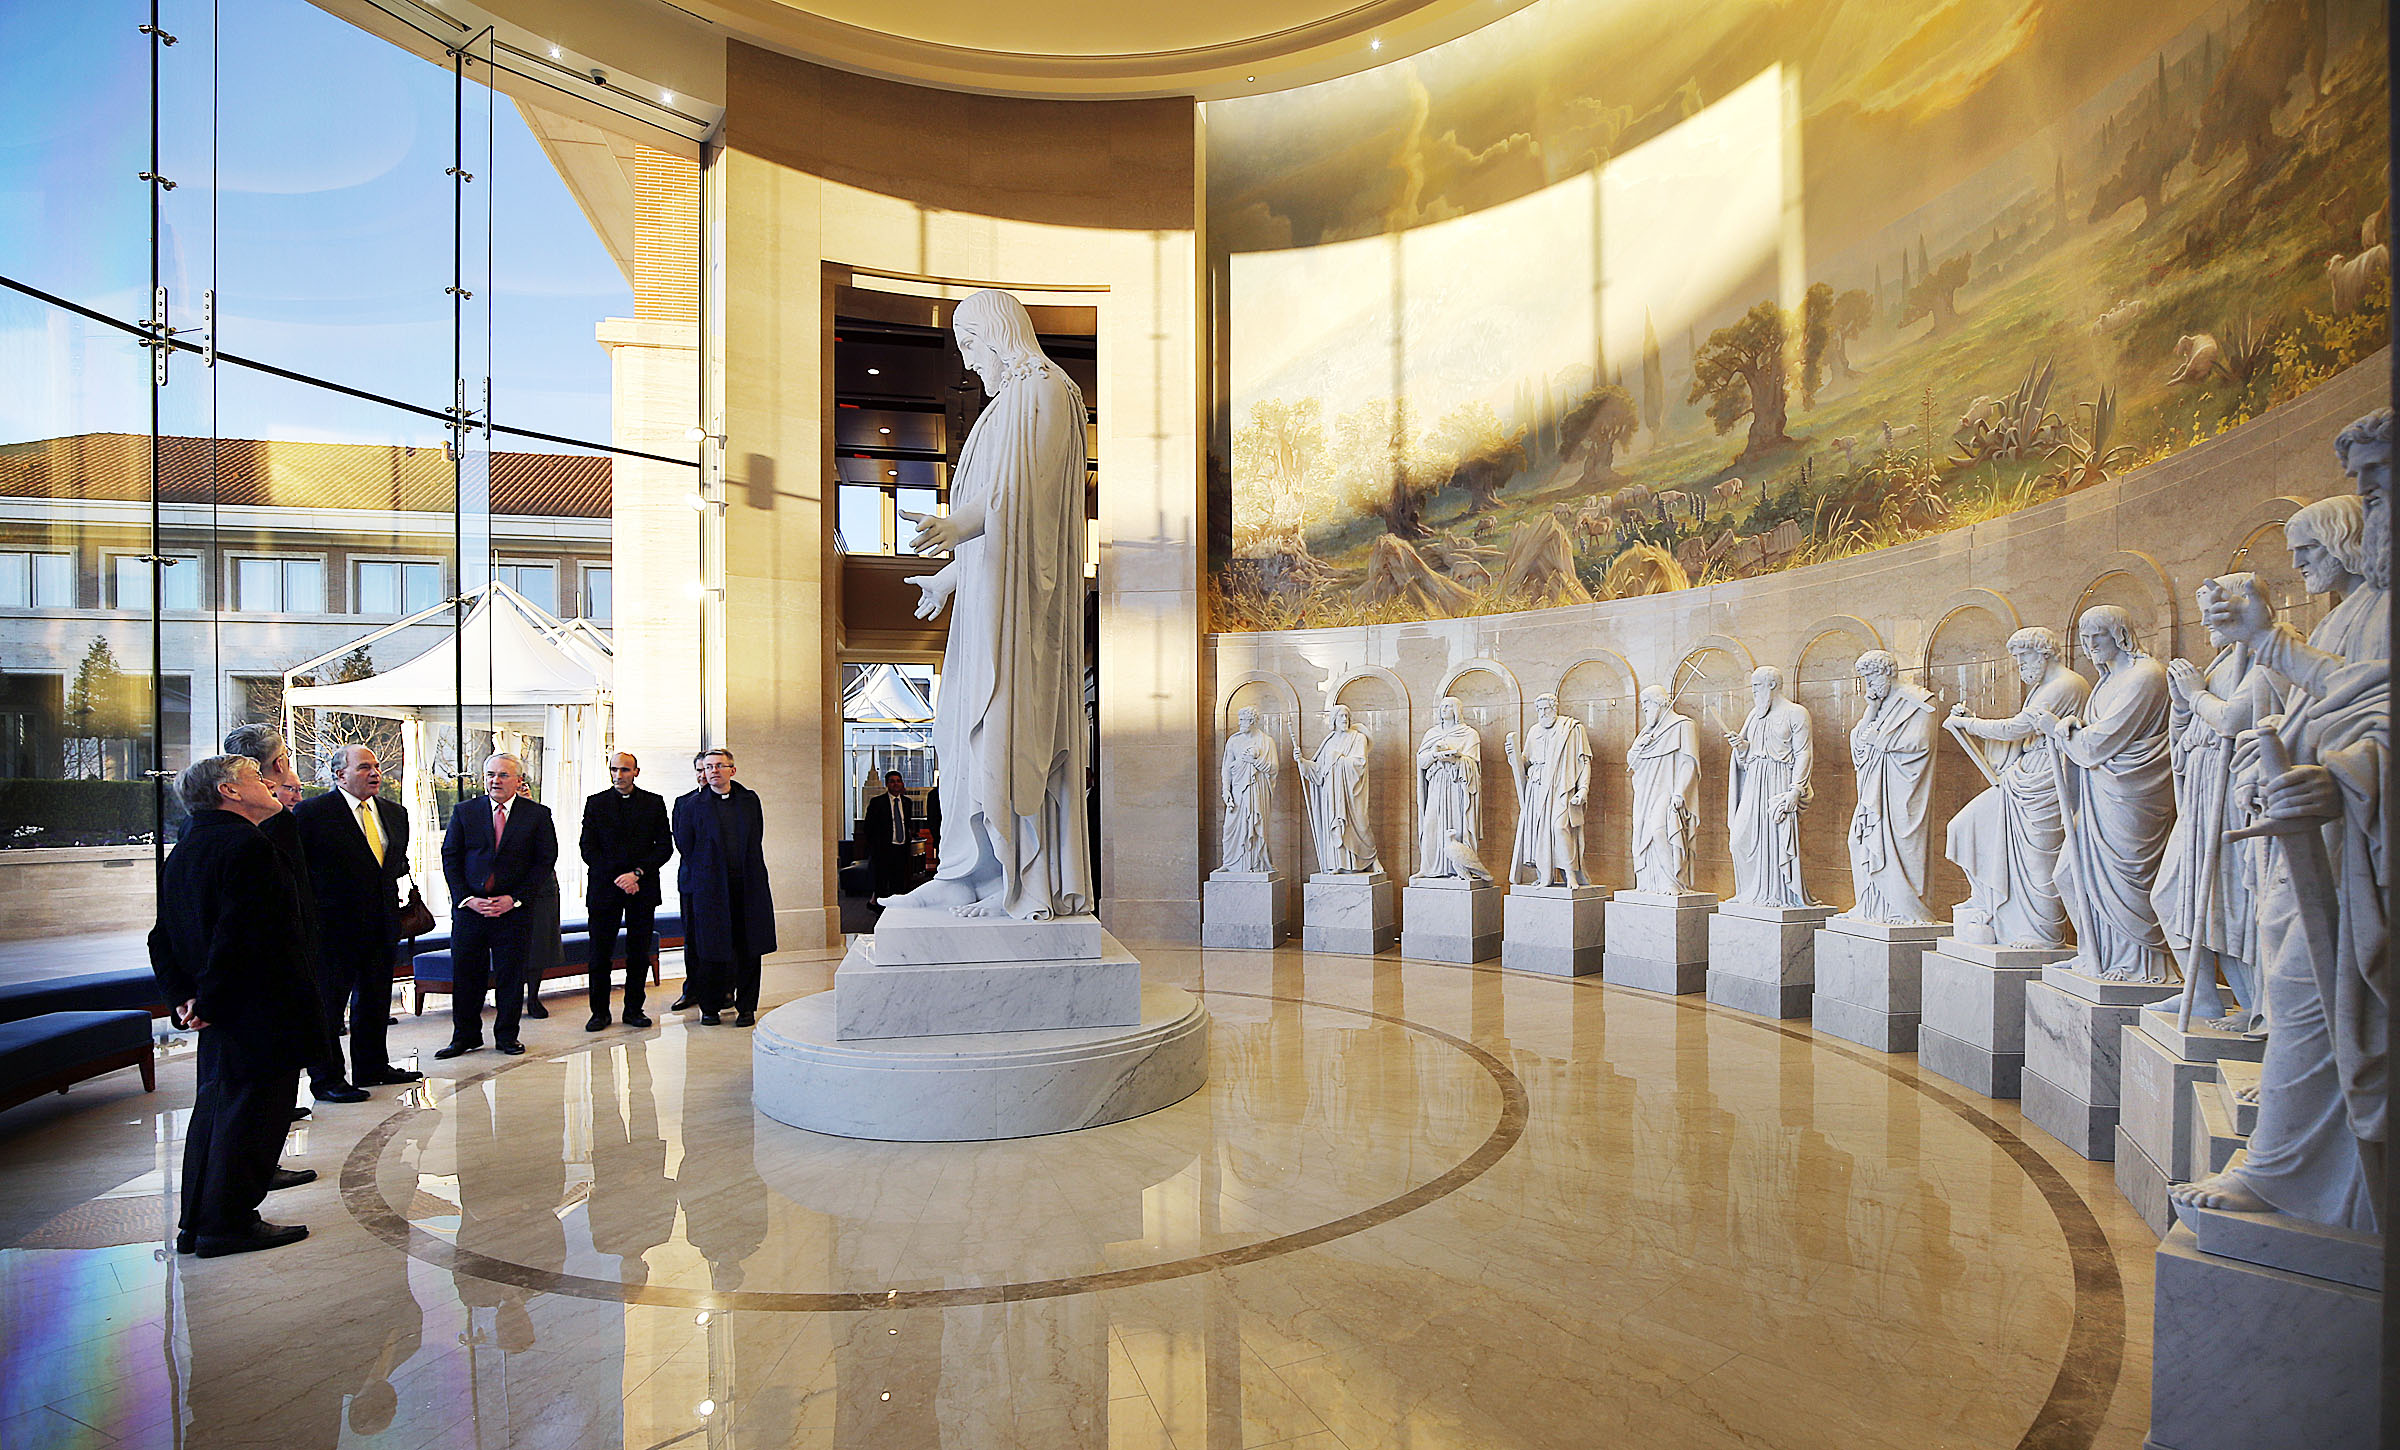 Elder Ronald A. Rasband and Elder Jack N. Gerard of The Church of Jesus Christ of Latter-day Saints lead a group from the Pontifical Council for Promoting Christian Unity during a tour of the Rome Italy Temple and grounds on Tuesday, Jan. 15, 2019.